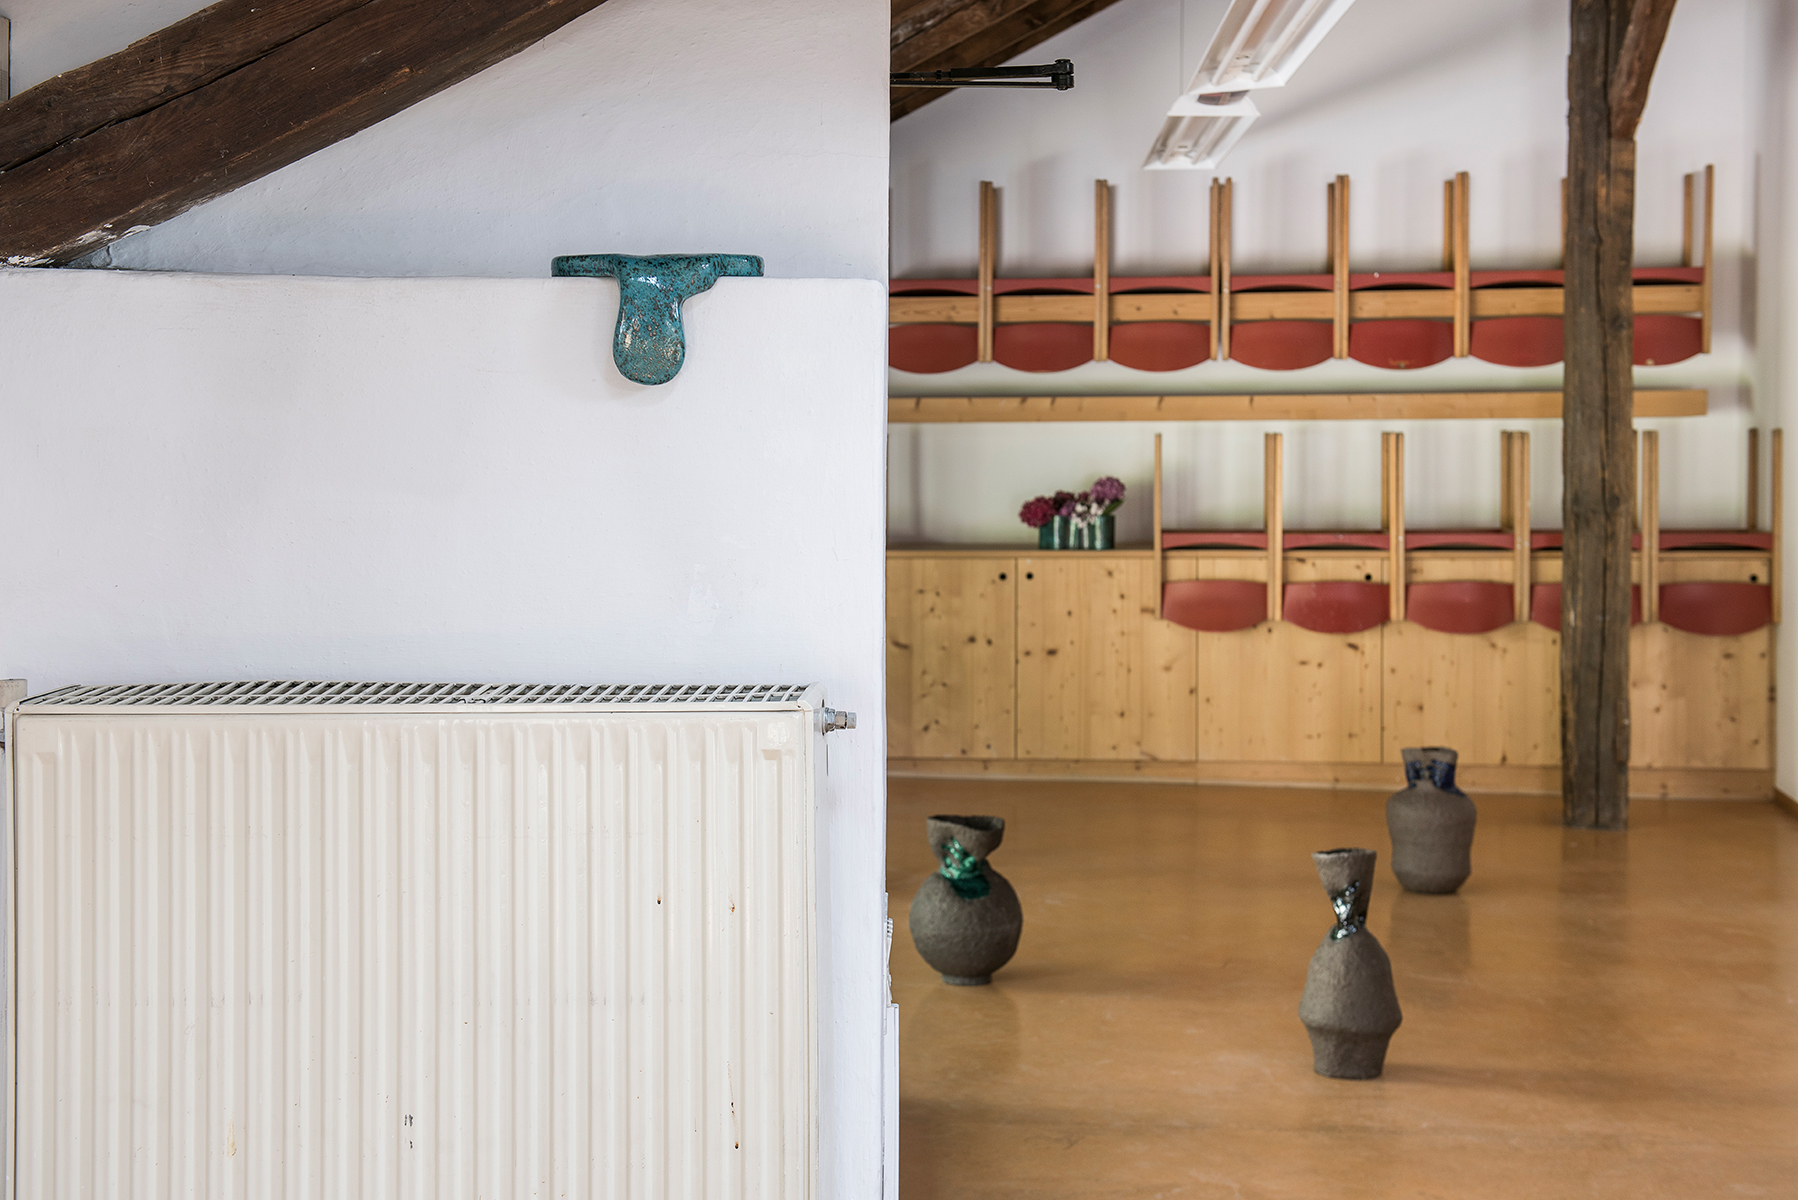 Giles Round, They parted at the end of spring. He couldn't promise anything, 1967, 2017, Glazed earthenware; Lindsay Lawson, Stranglers, 2017, Glazed earthenware